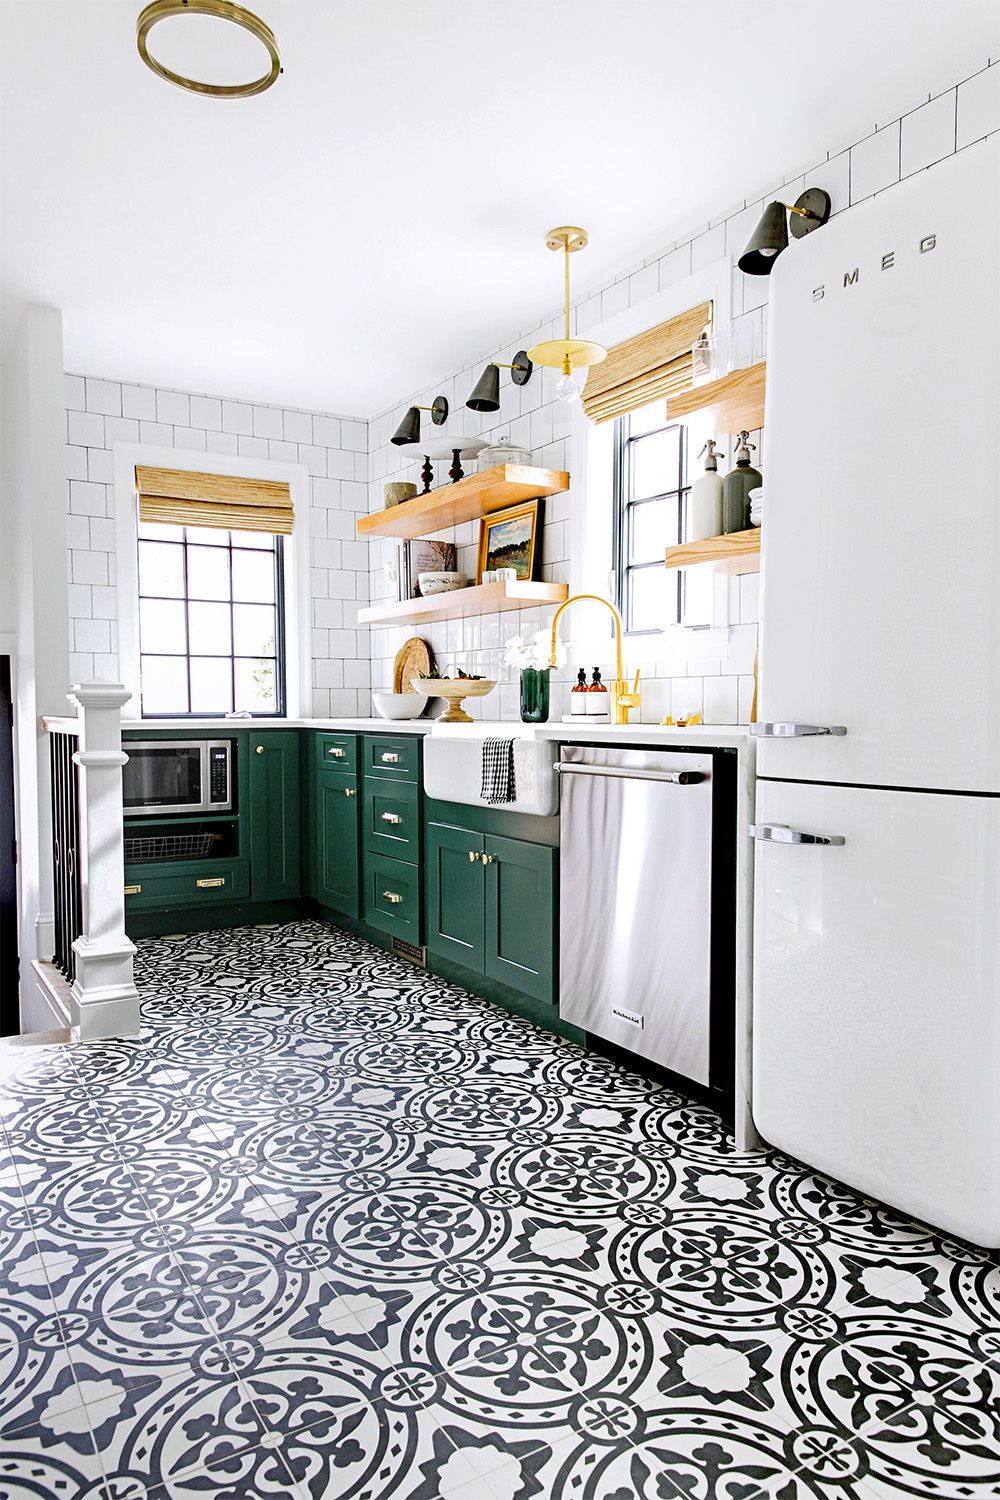 Decor And Decorating Ideas For Kitchen